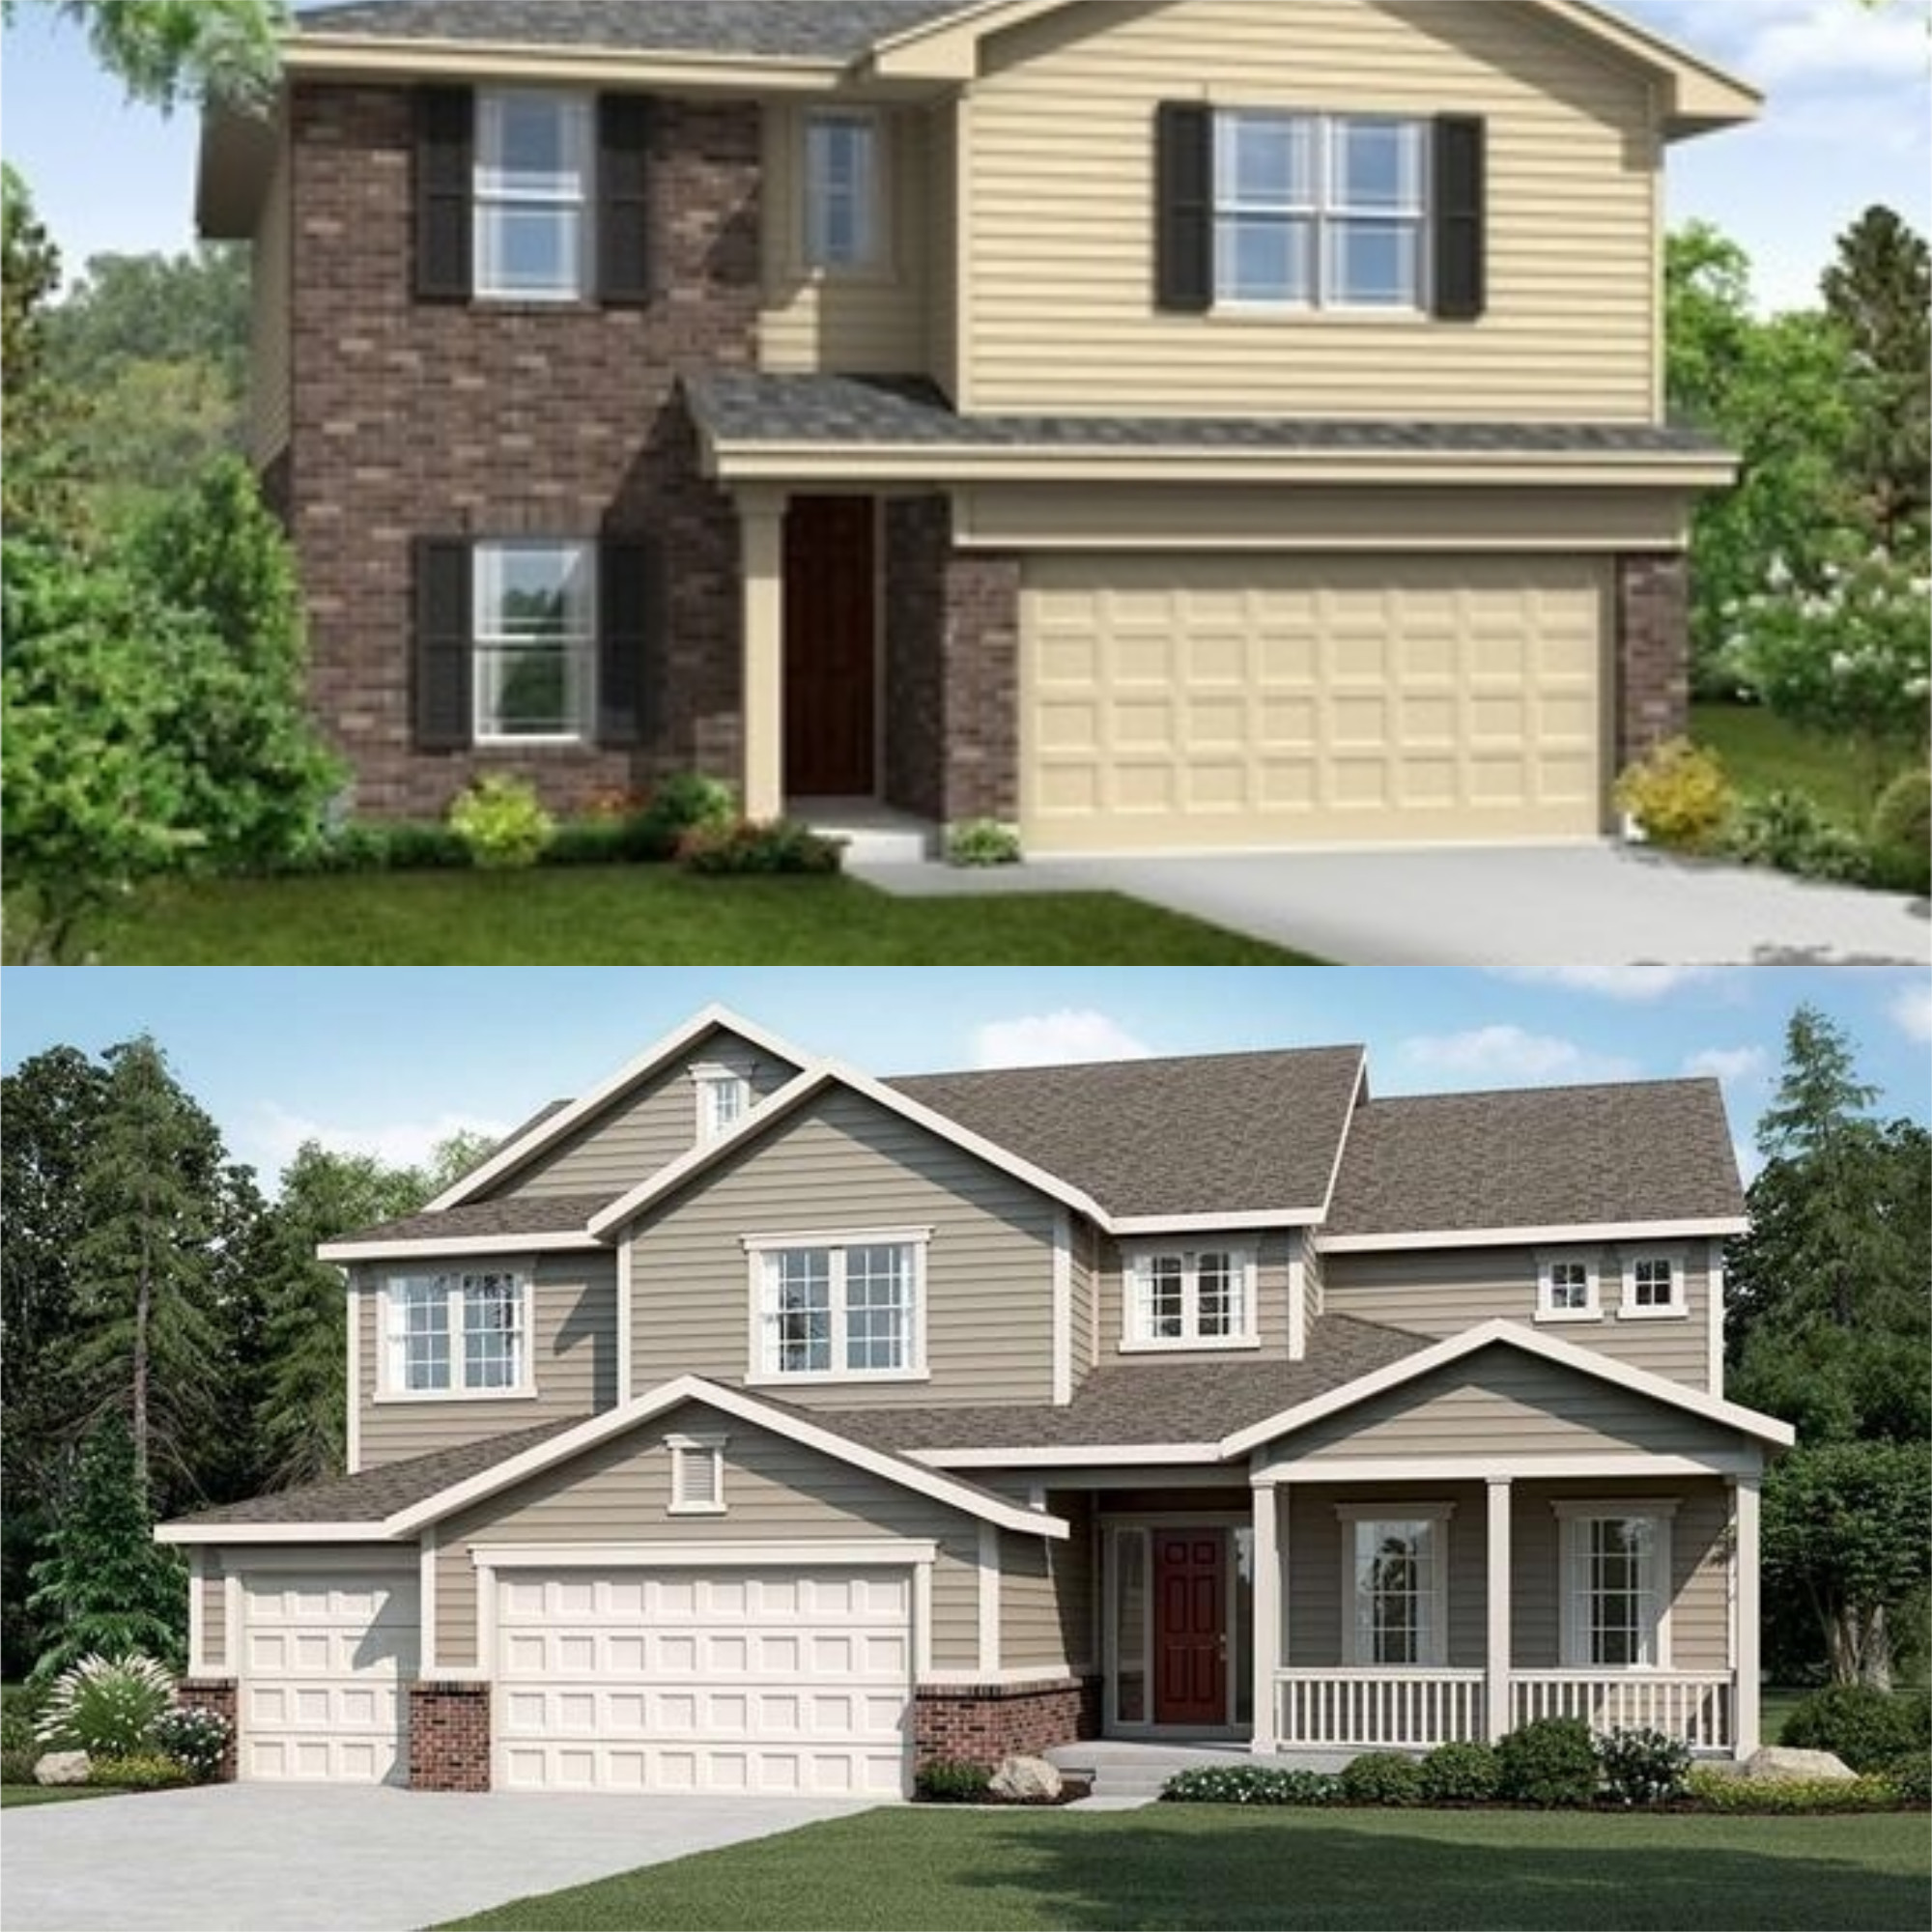 3000 Sq Ft Home or 50 Exterior Panes